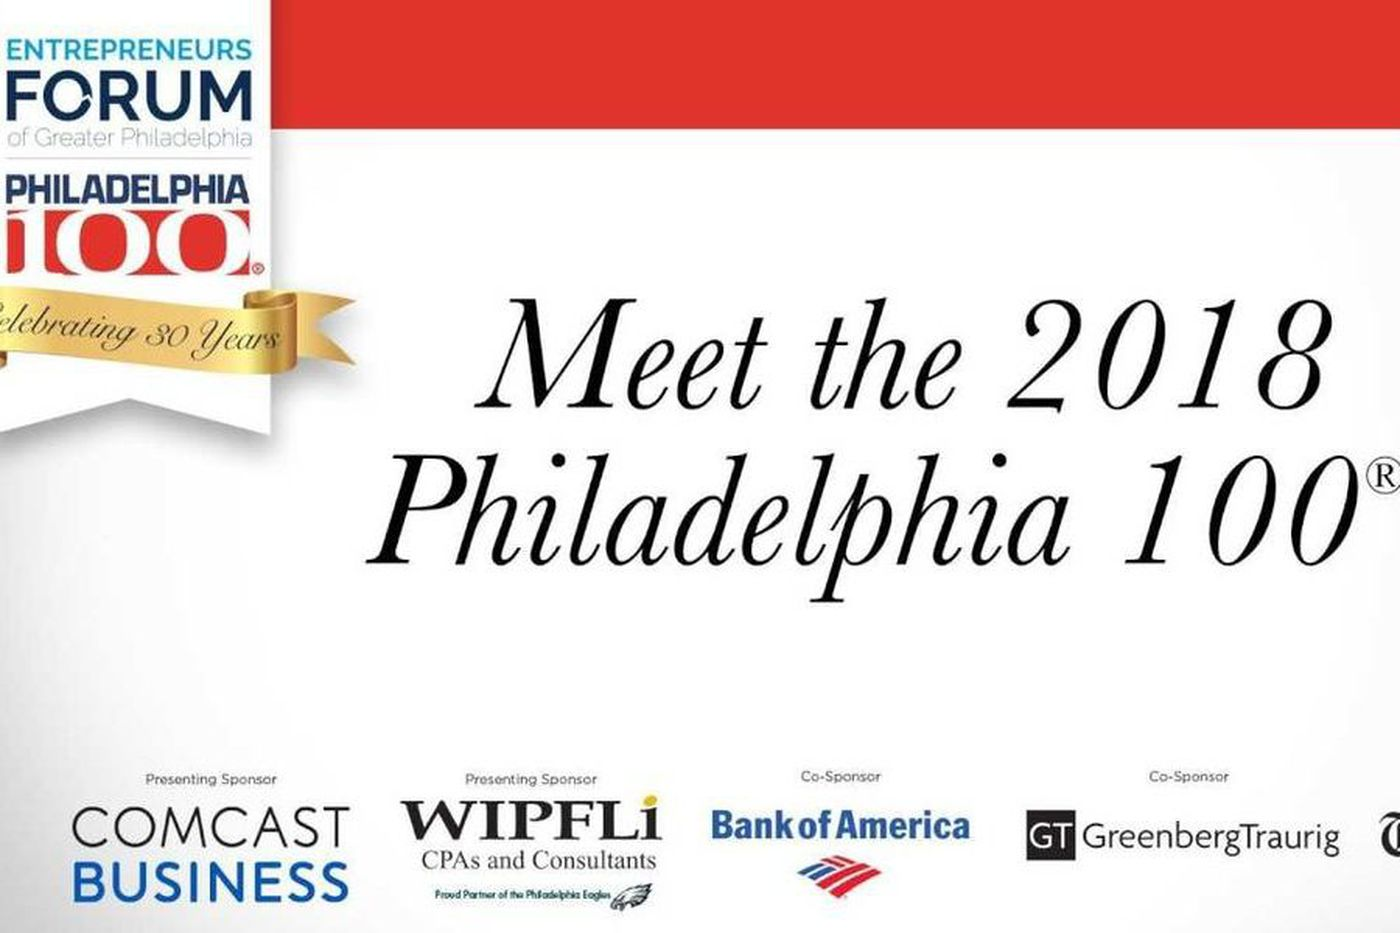 Introducing the 2018 Philadelphia 100, the region's fastest growing companies